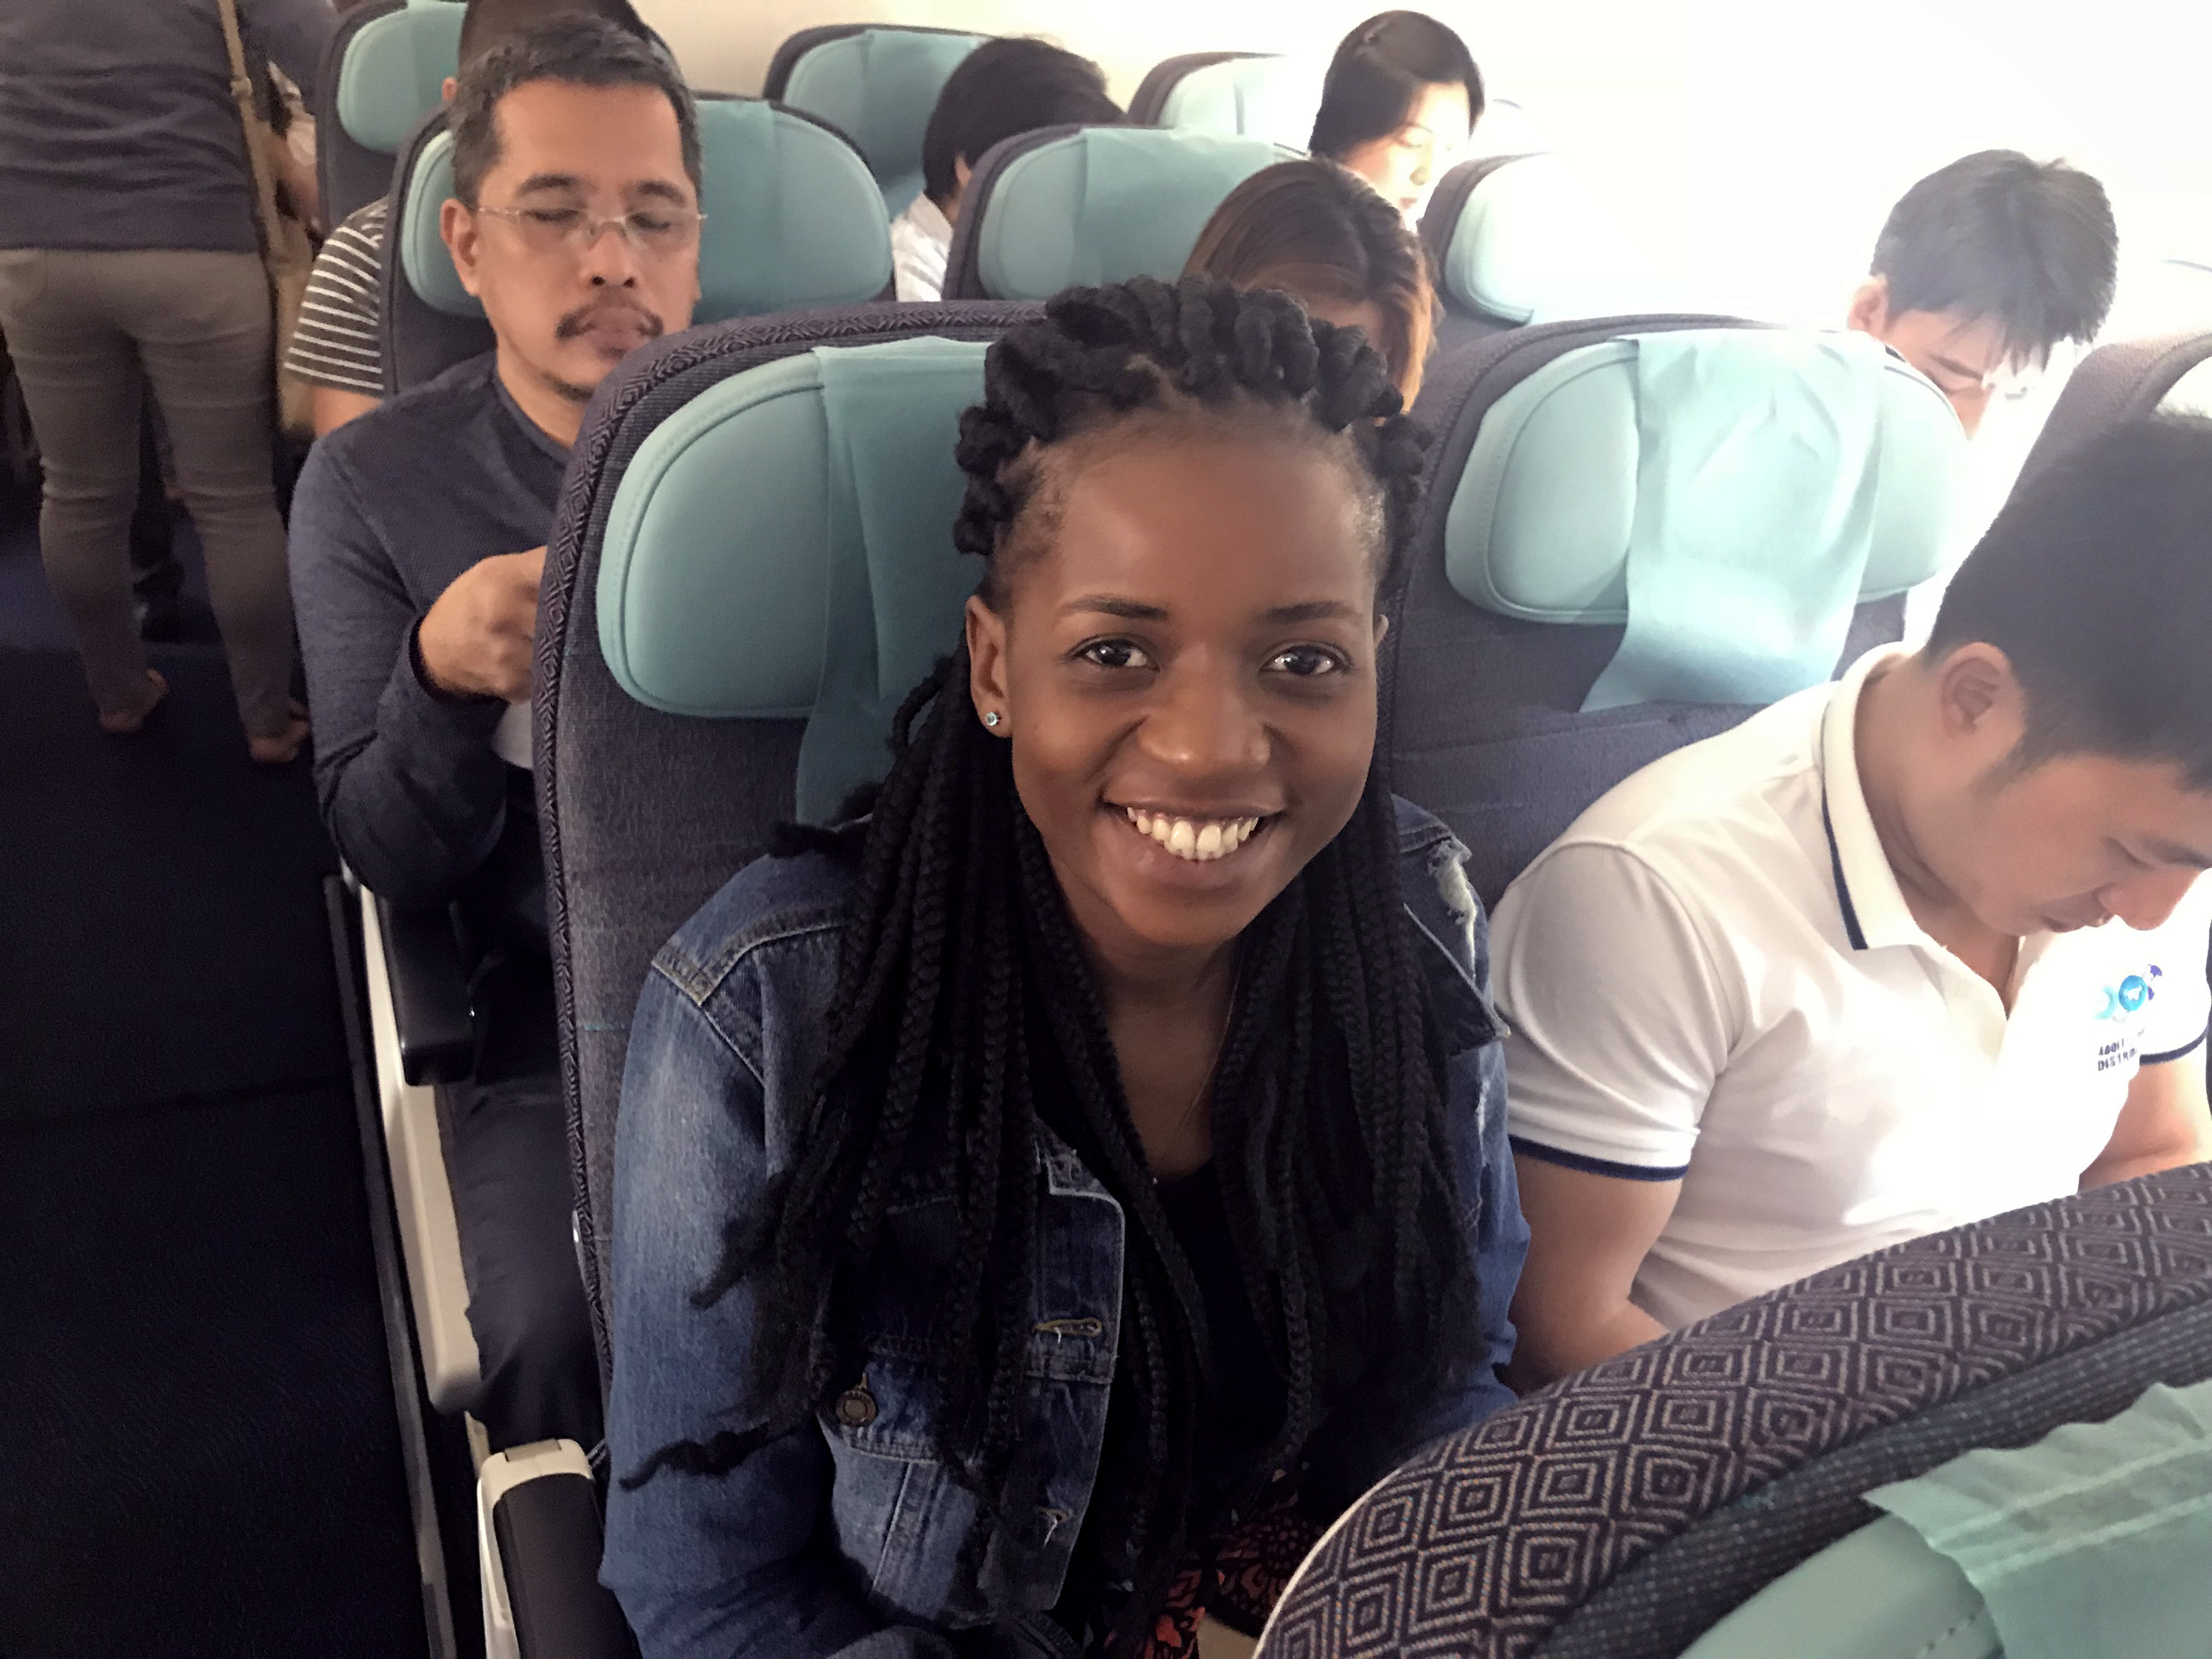 Miracle Osman smiles as she waits for her flight to depart from Davao to Manila. Osman is working with Filipino attorneys on paperwork to allow her to leave the Philippines. Photo courtesy of Thomas Kemper, GBGM.